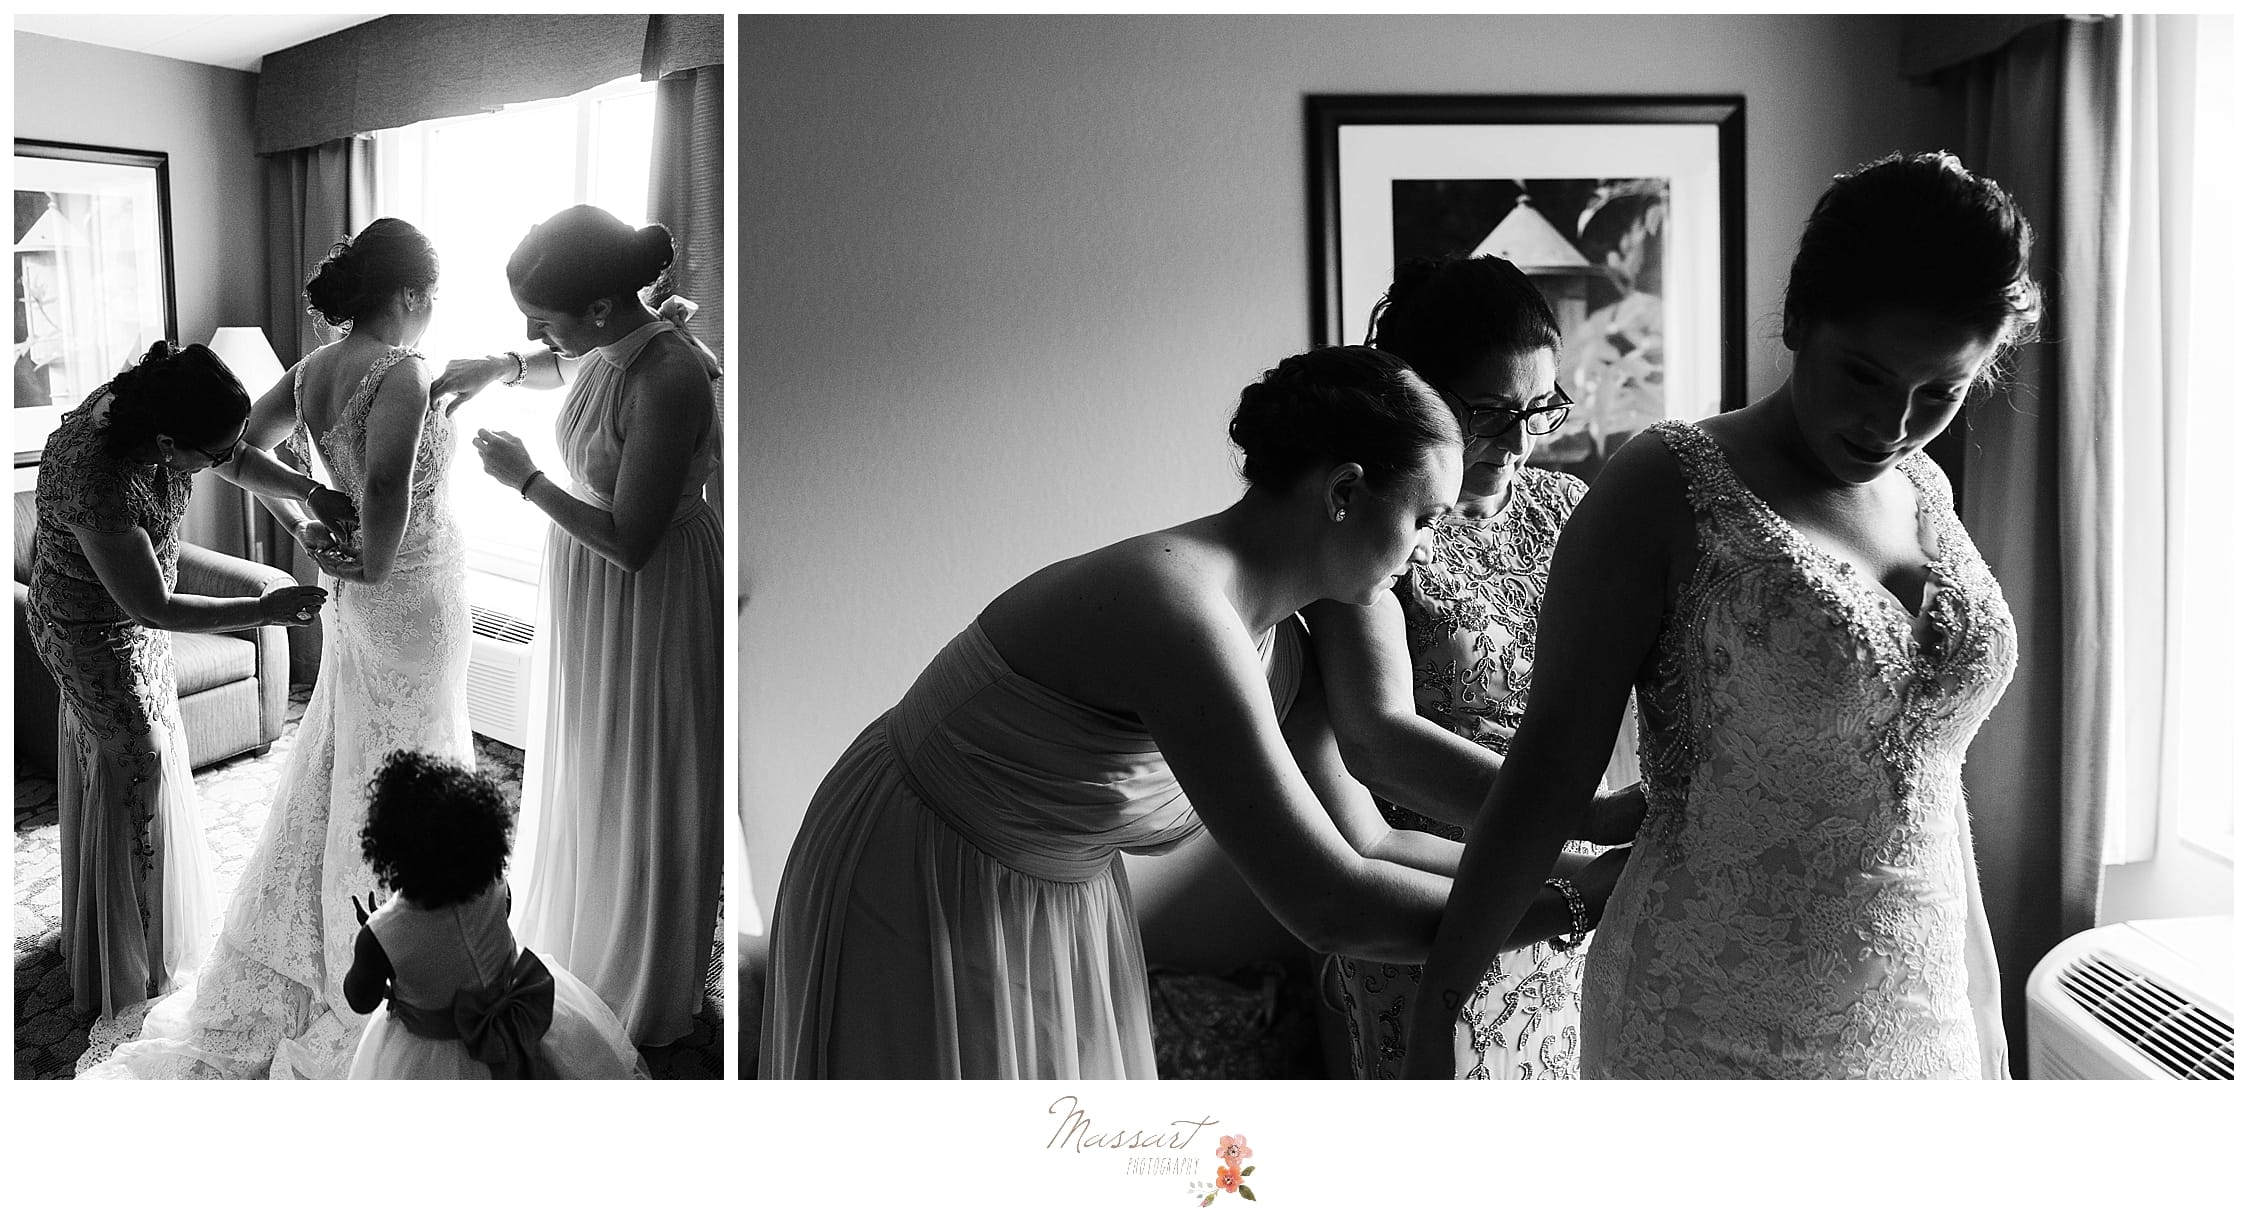 Bridesmaids getting bride into wedding dress for summer wedding at Harbor Lights in RI photographed by Massart Photography, maternity, newborn and family photographers.